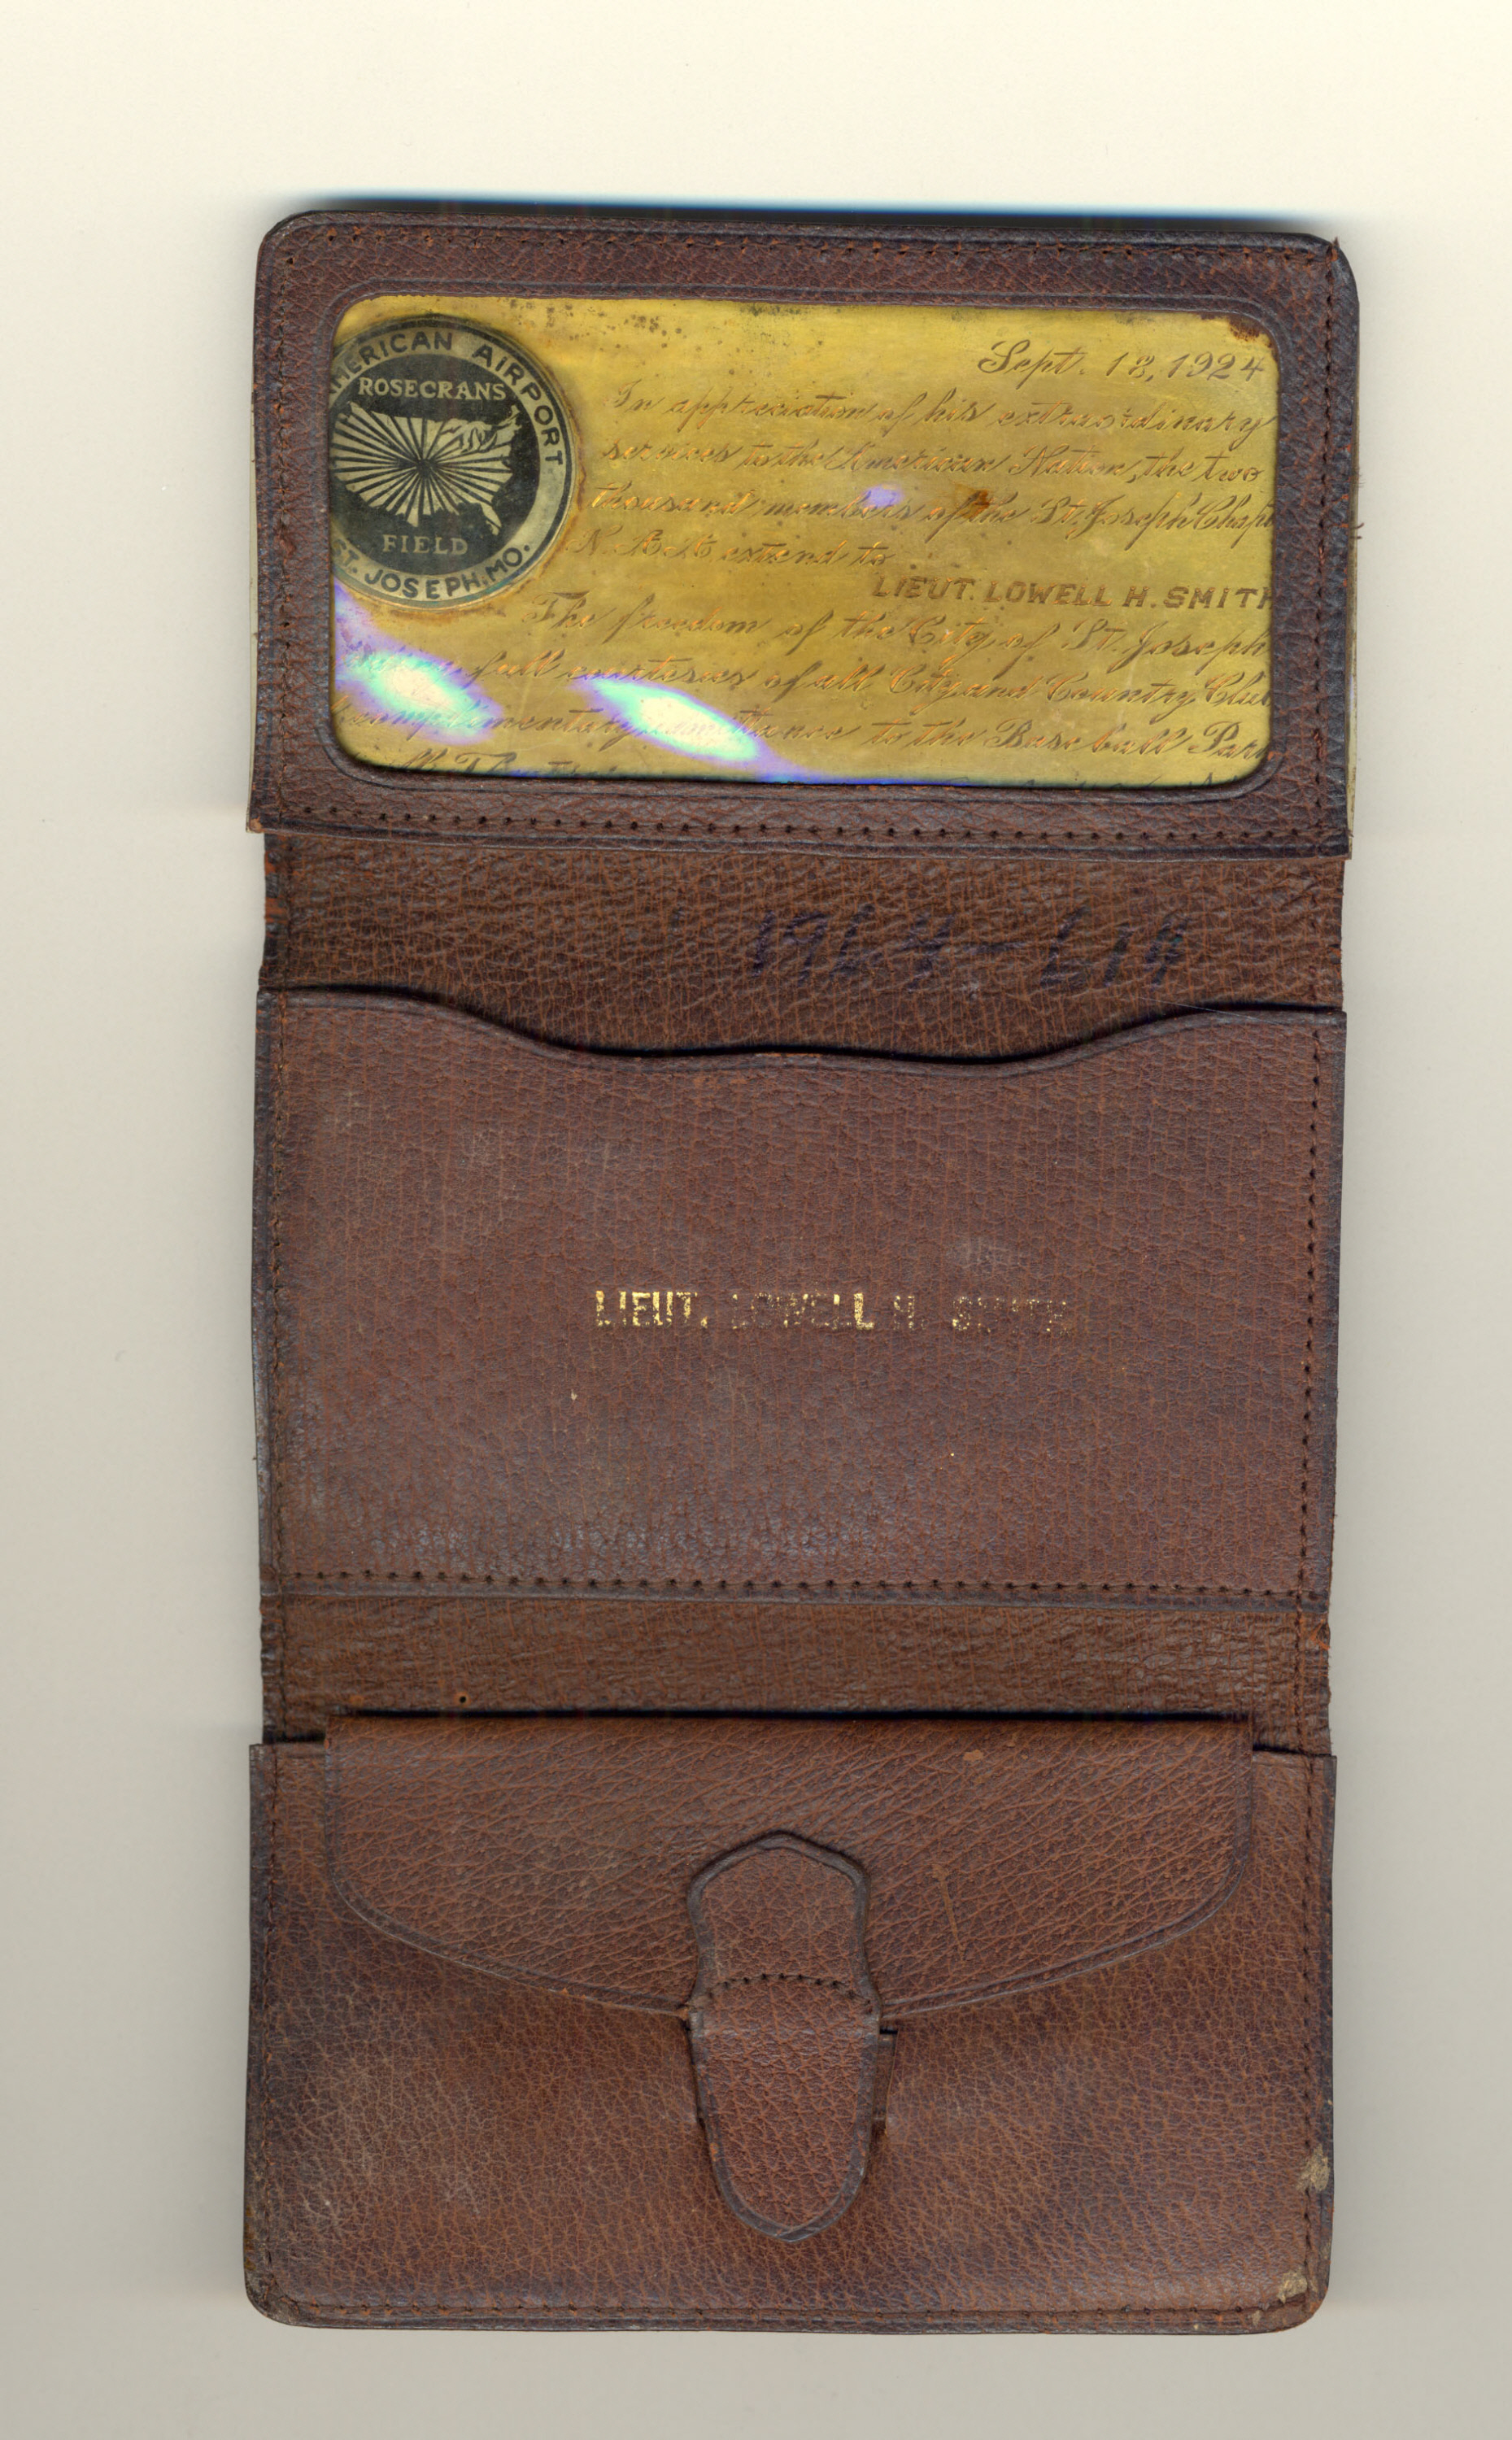 Image of : Wallet and Pass to St. Joseph, Missouri, Lt. Lowell Smith